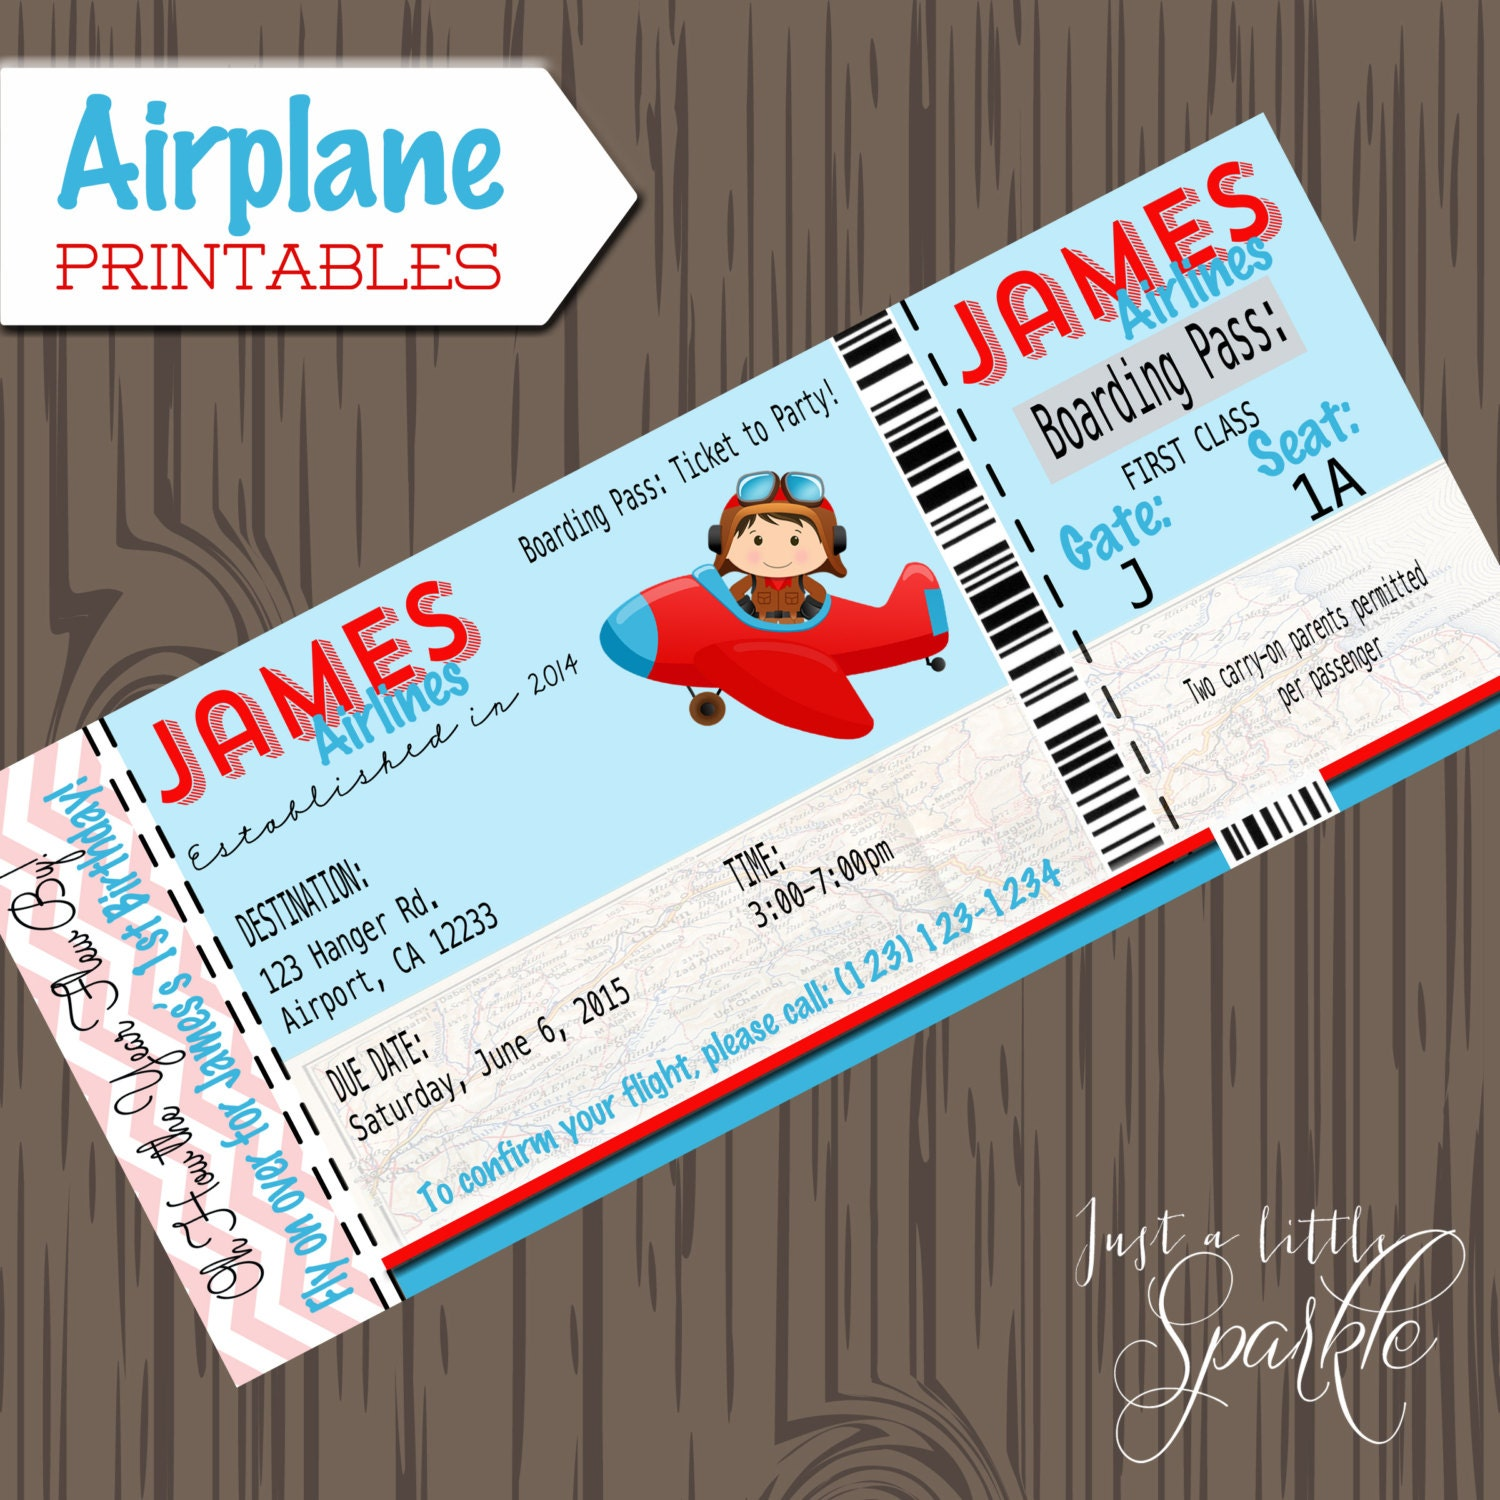 Printable Vintage Airplane Party Collection Diy By: Pilot Invitations Cards-DIY Lil Pilots Airplane Birthday